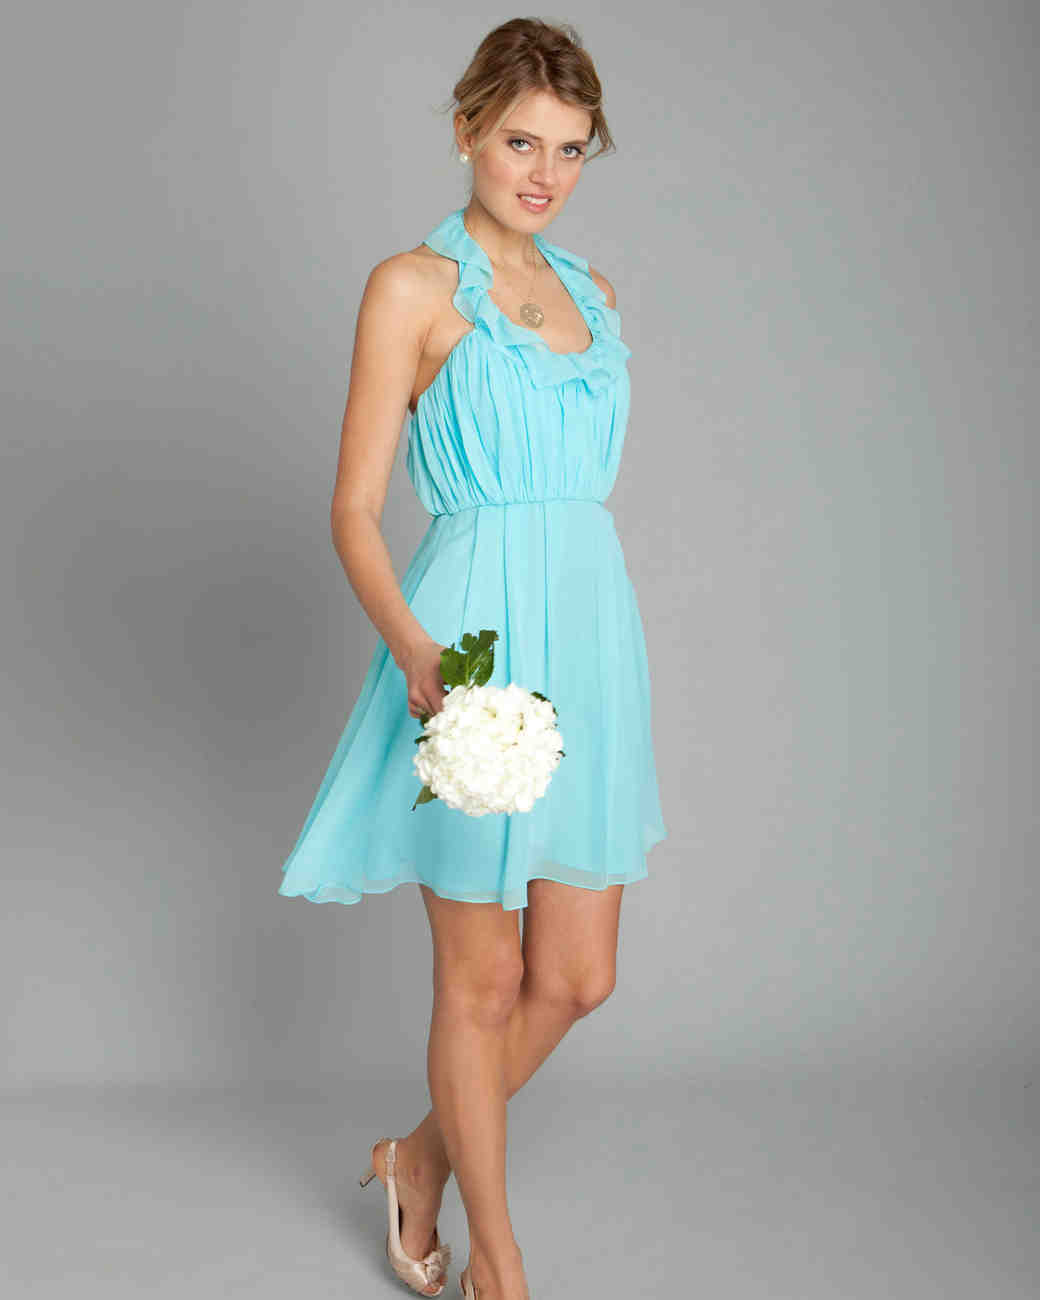 Bridesmaid dresses for beach weddings martha stewart weddings coren moore ombrellifo Choice Image